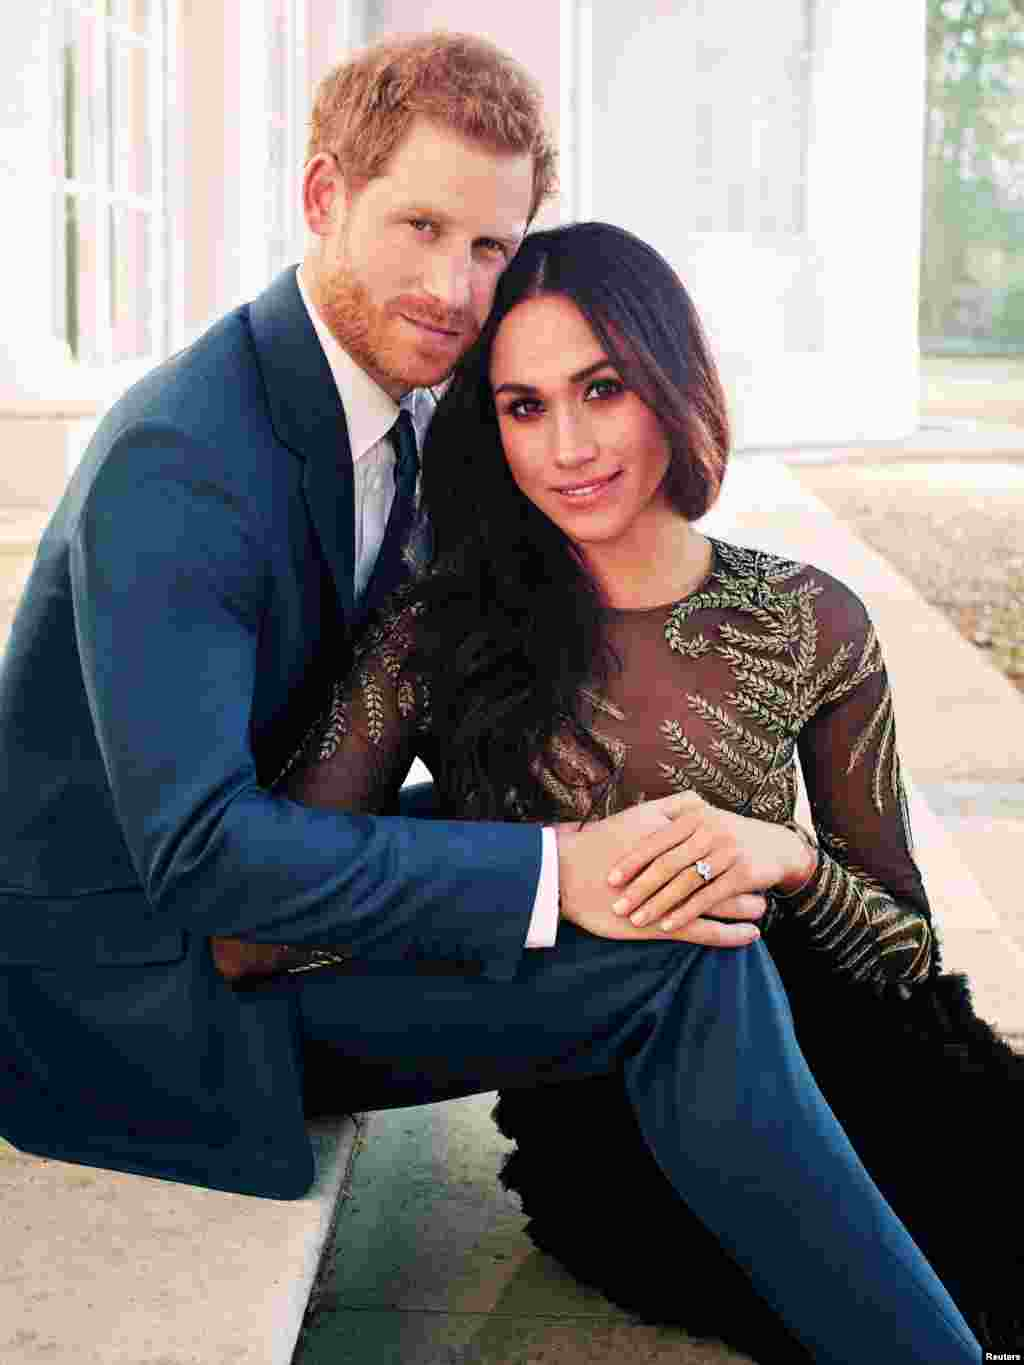 One of the official engagement photos released by Kensington Palace of Prince Harry and Meghan Markle, at Frogmore House in Windsor, Britain. (Credit: Kensington Palace/Handout via Reuters)